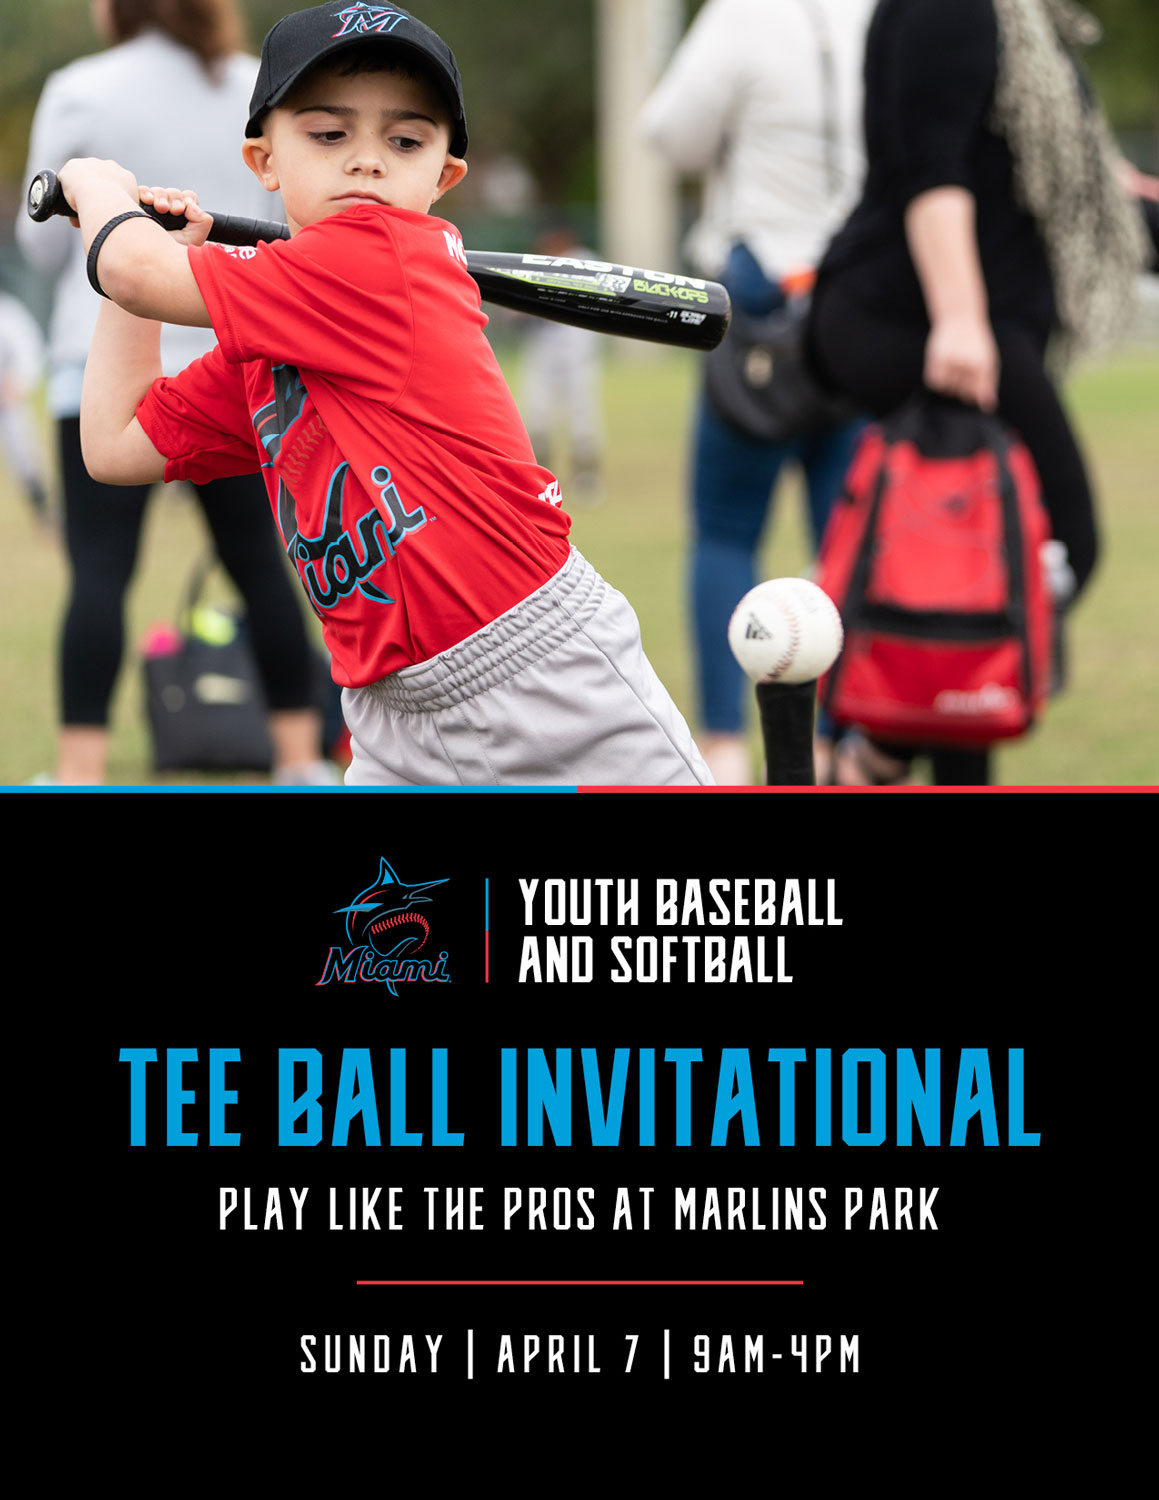 YB019_Tee_Ball_Invitational_Flyer.jpg